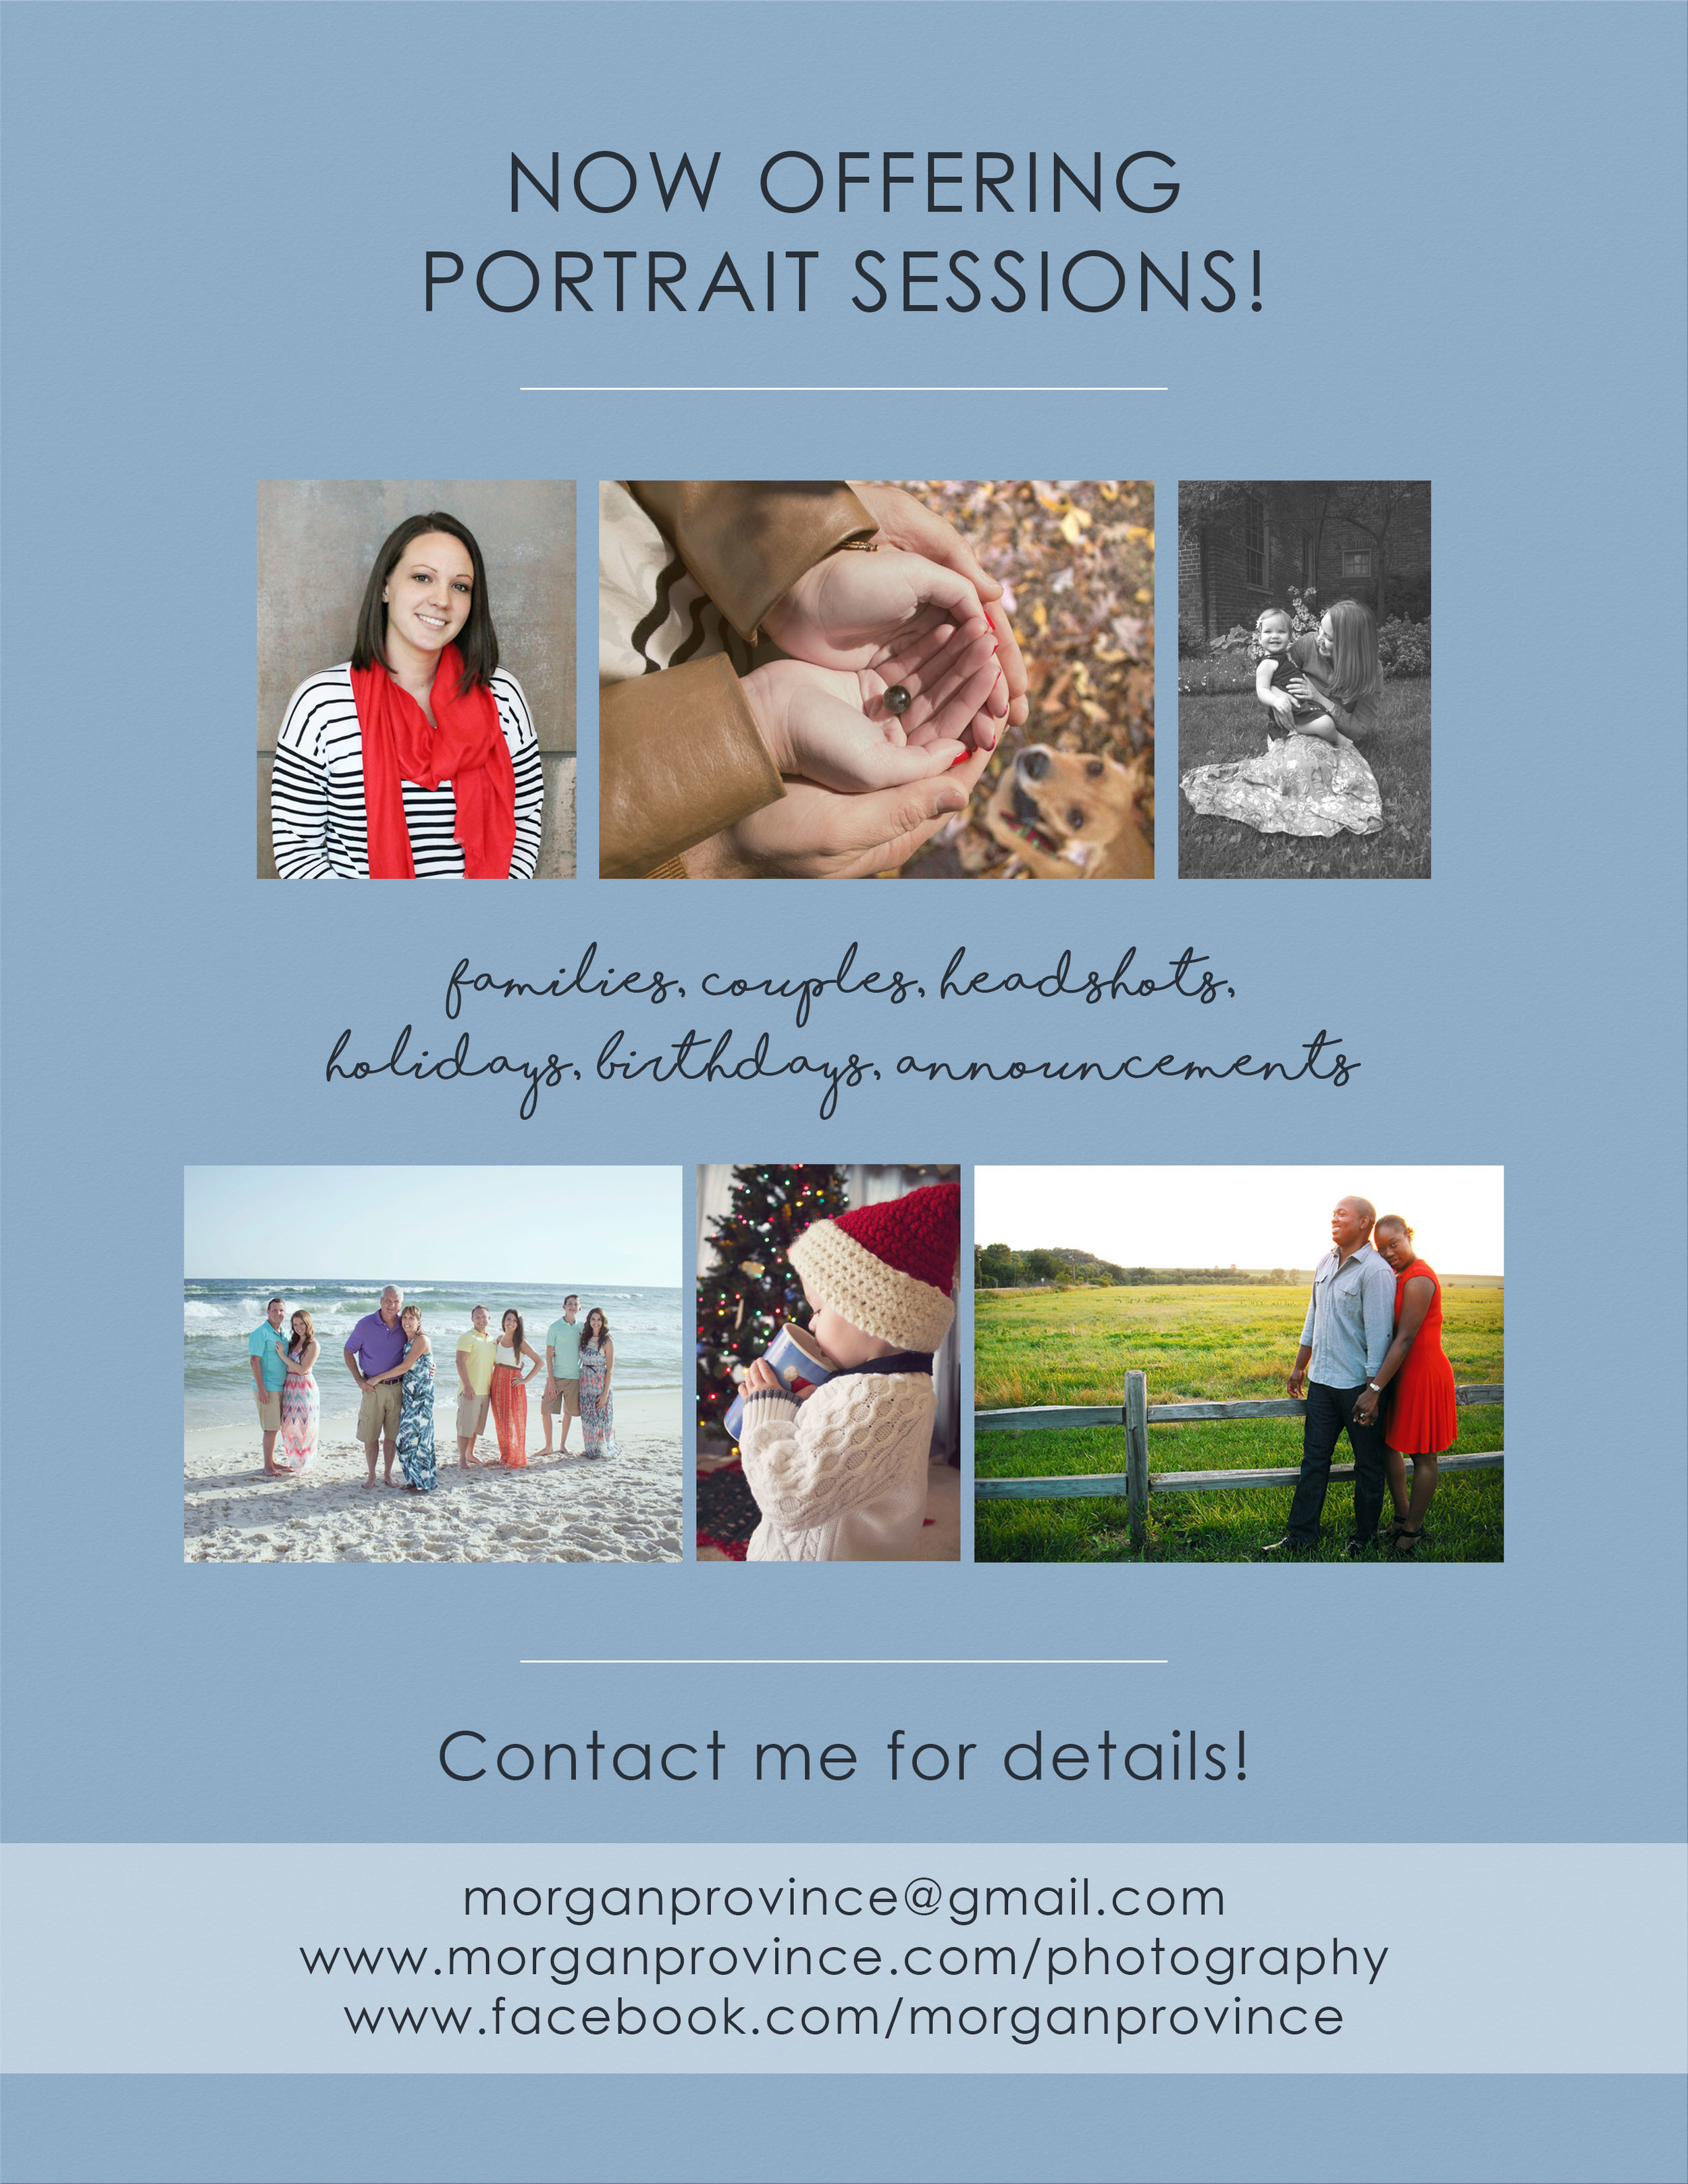 Contact Morgan Province for Your Photography Needs!